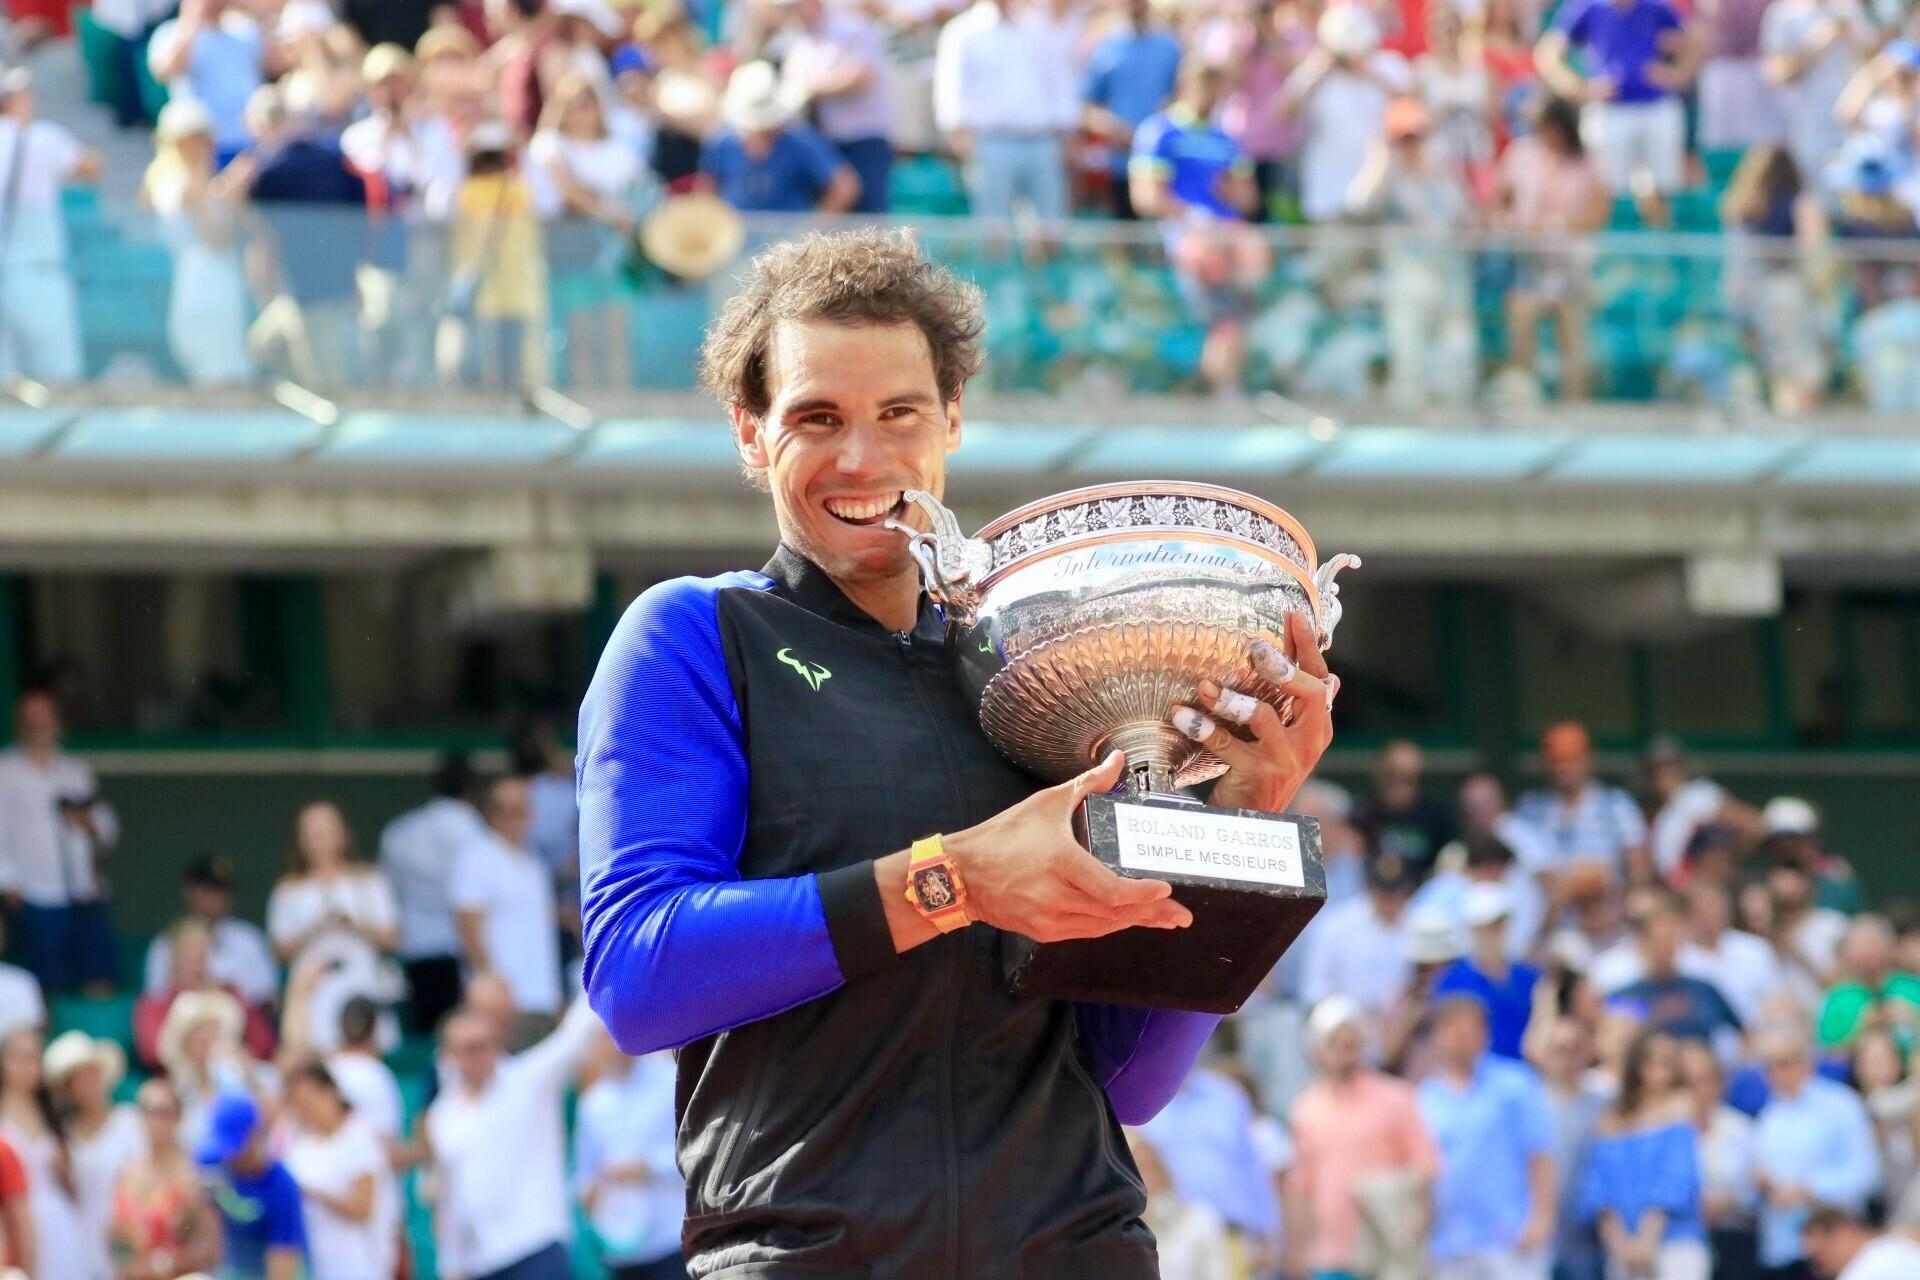 Rafael Nadal after winning at Rolland-Garros for the 10th time